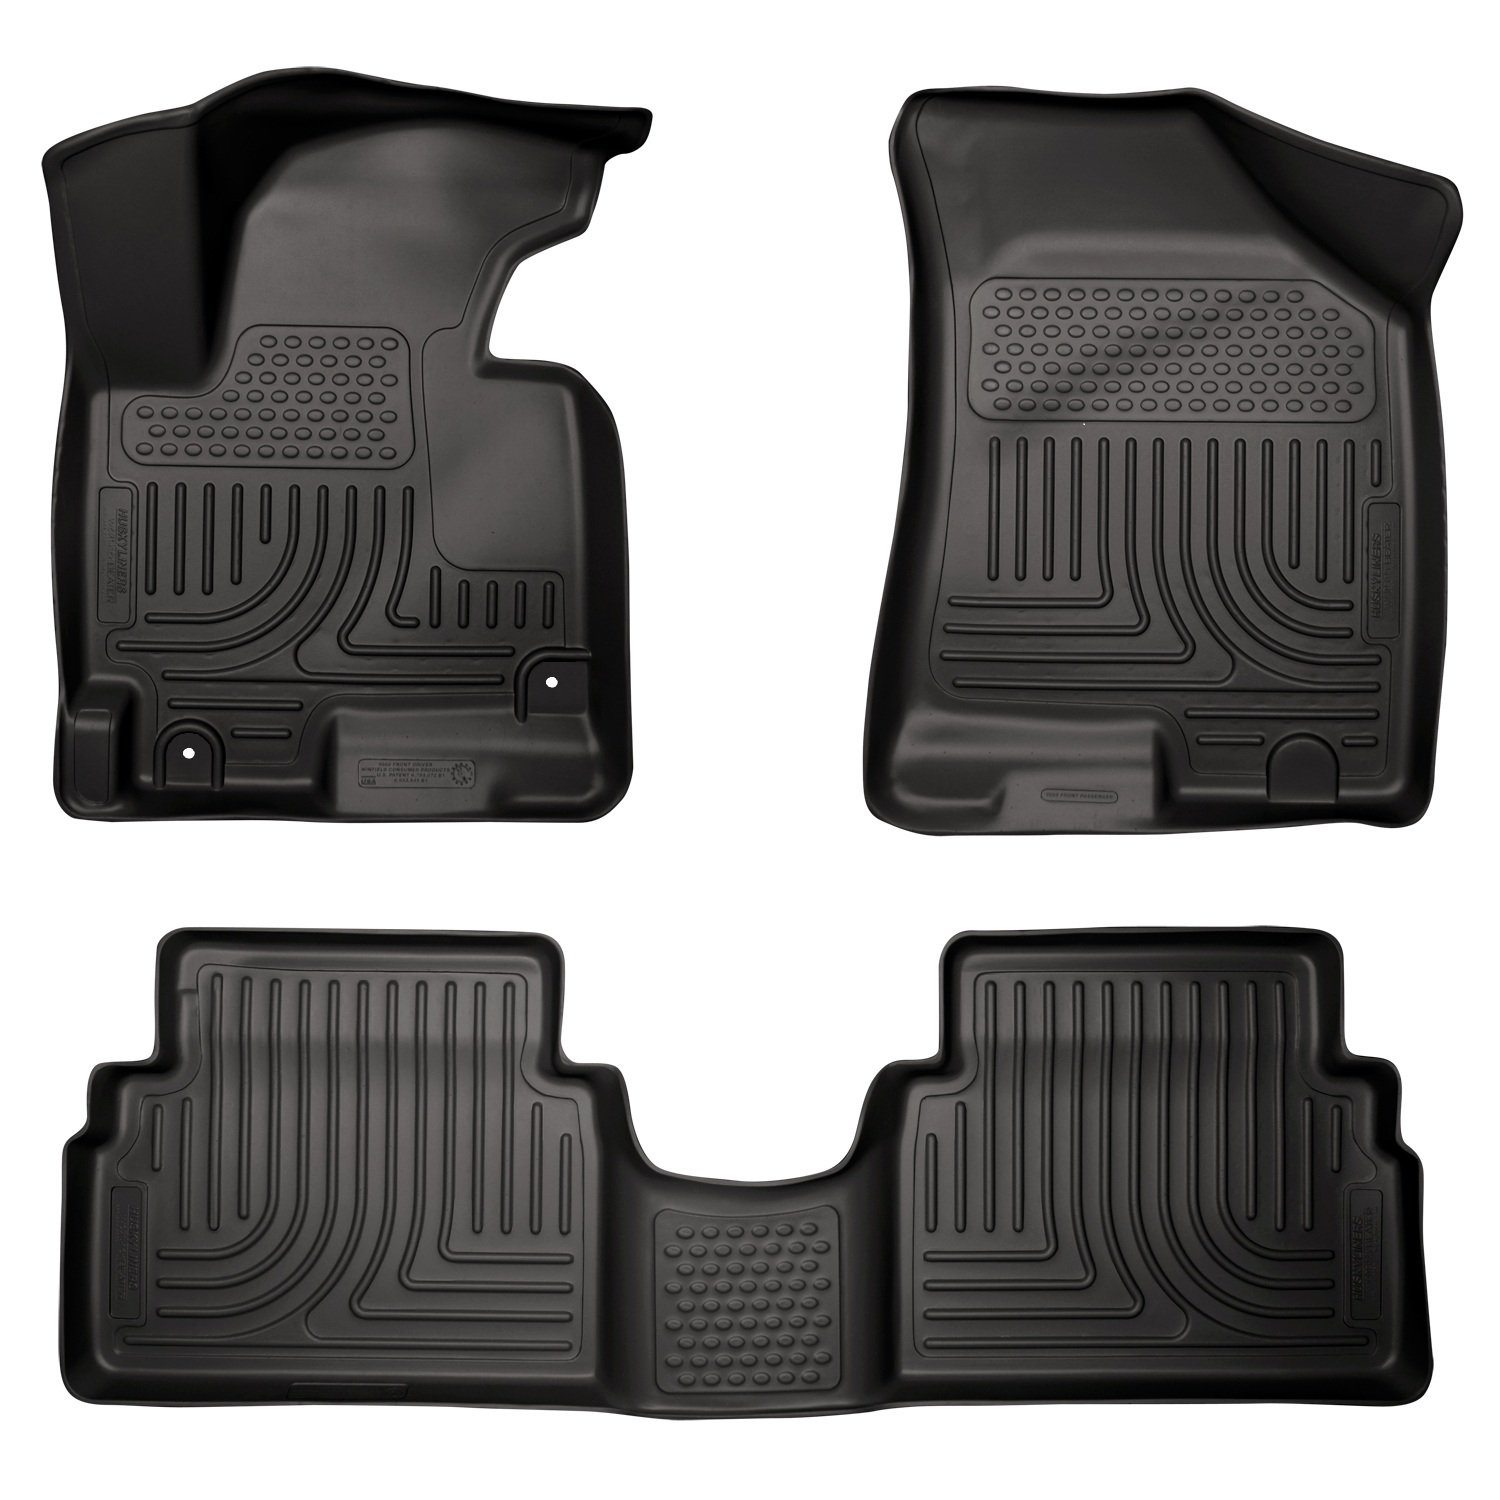 Floor mats kia - Amazon Com Husky Liners Front 2nd Seat Floor Liners Fits 11 13 Sportage Automotive